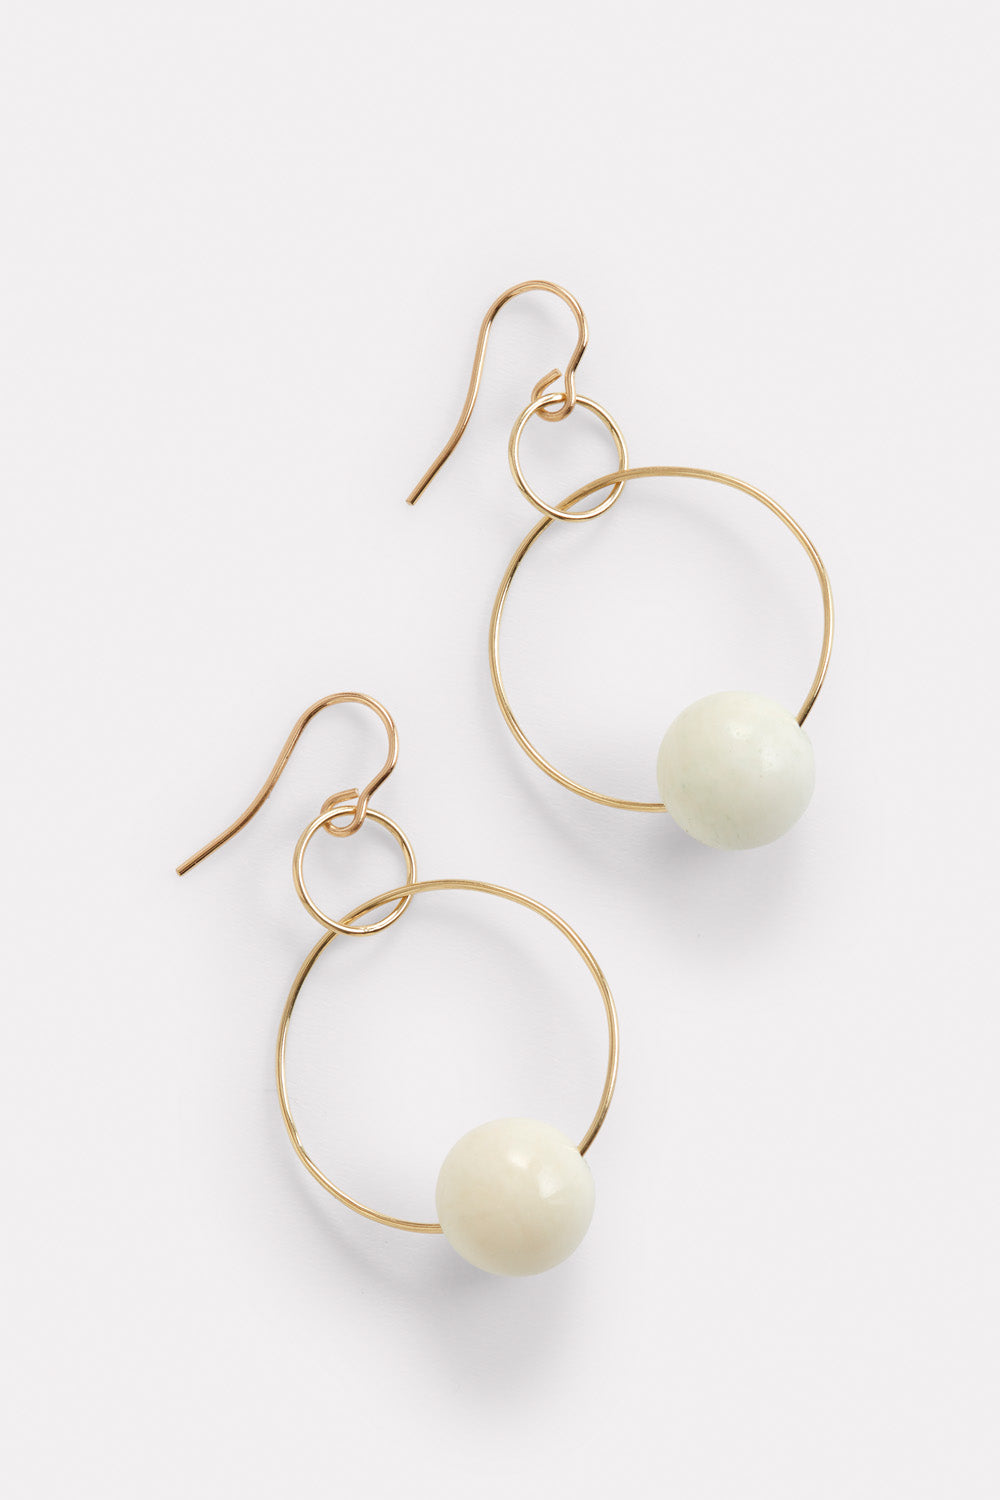 PermanentCollection - Blunk Double Hoop Gold:Bone 3